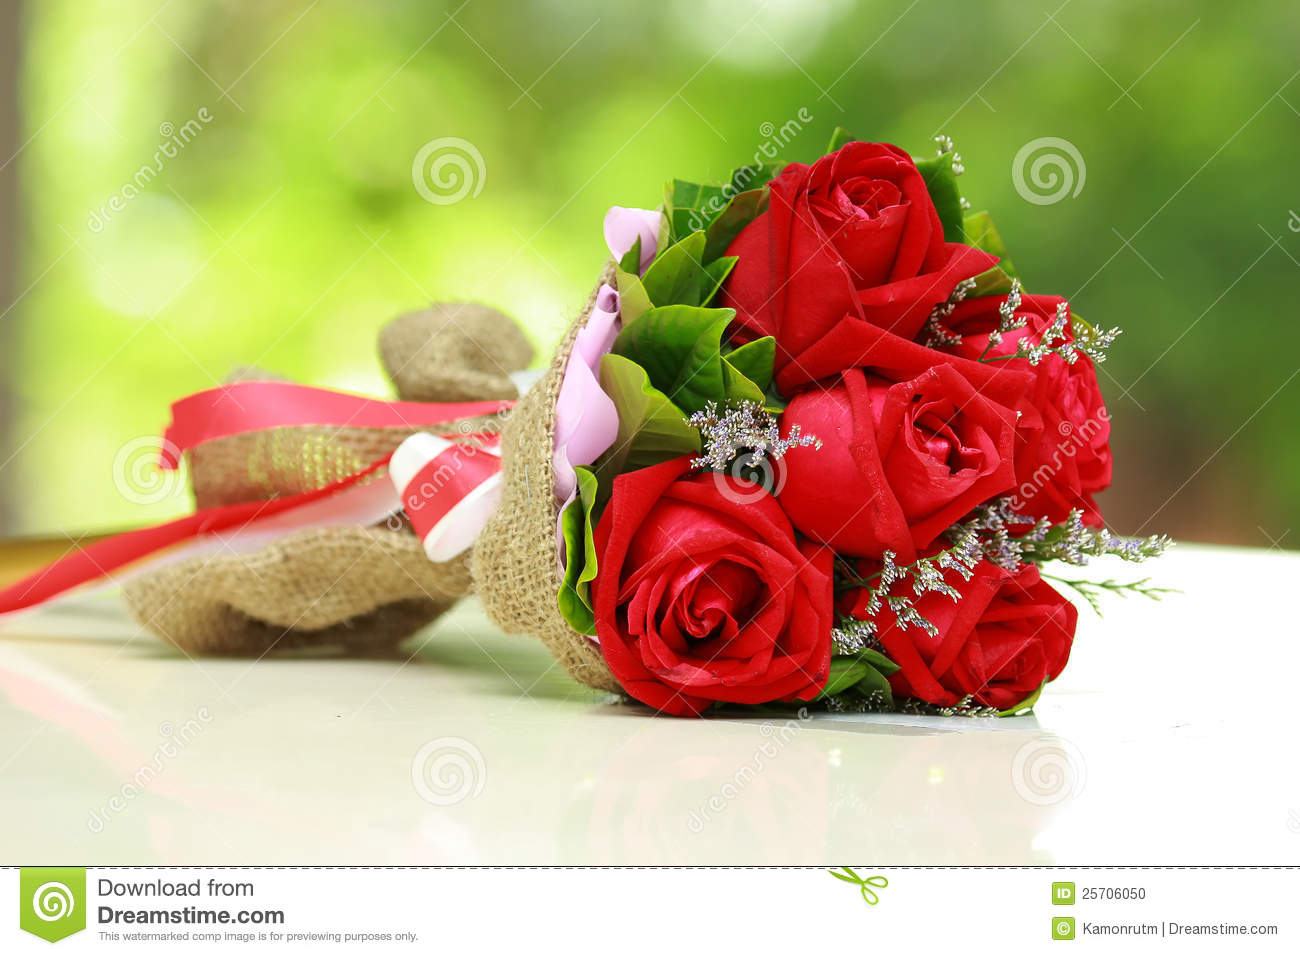 Beautiful bouquet of bright red flowers stock photo image of download beautiful bouquet of bright red flowers stock photo image of beauty closeup izmirmasajfo